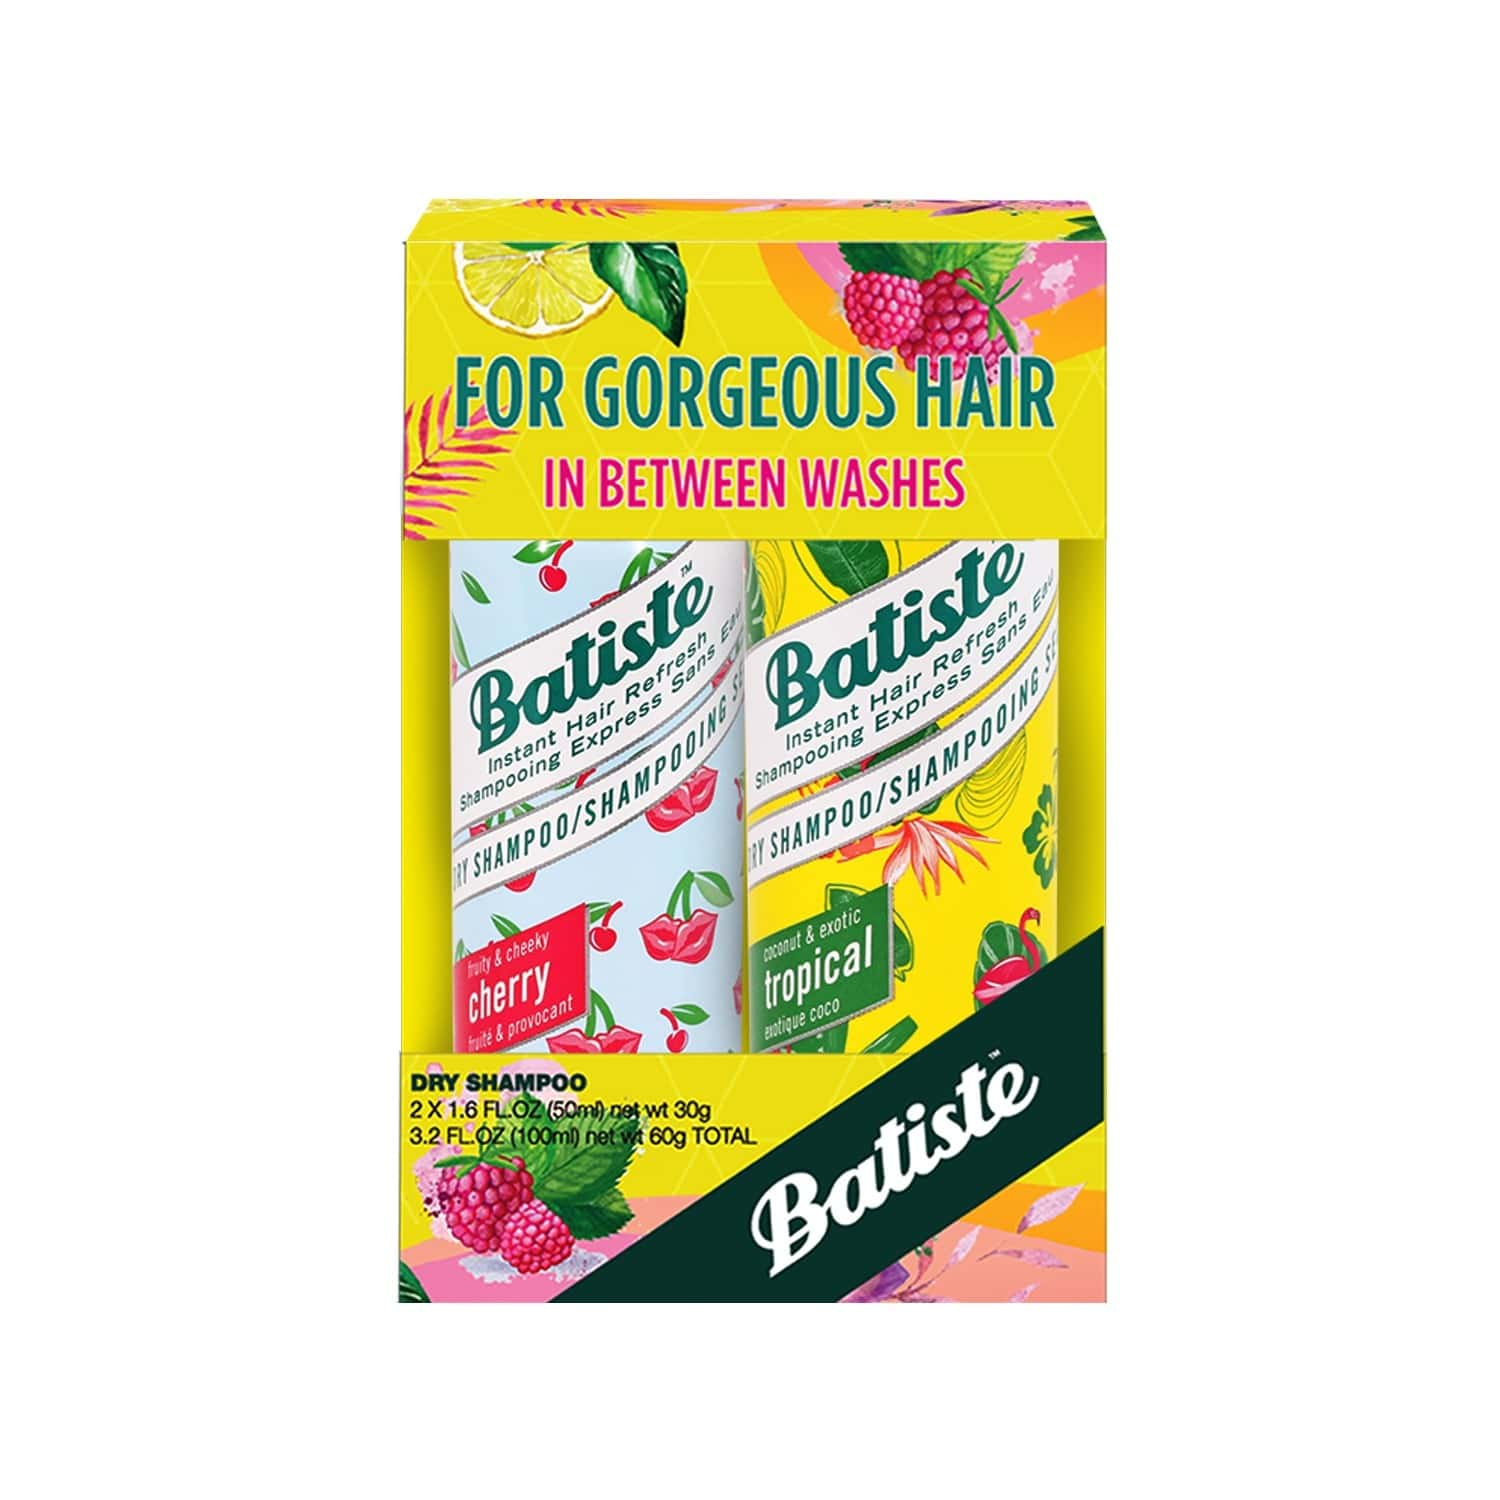 Batiste Value Kit Fruity & Cheeky Cherry, Coconut & Exotic Tropical Dry Shampoo - 100ml (pack Of 2 X 50ml)